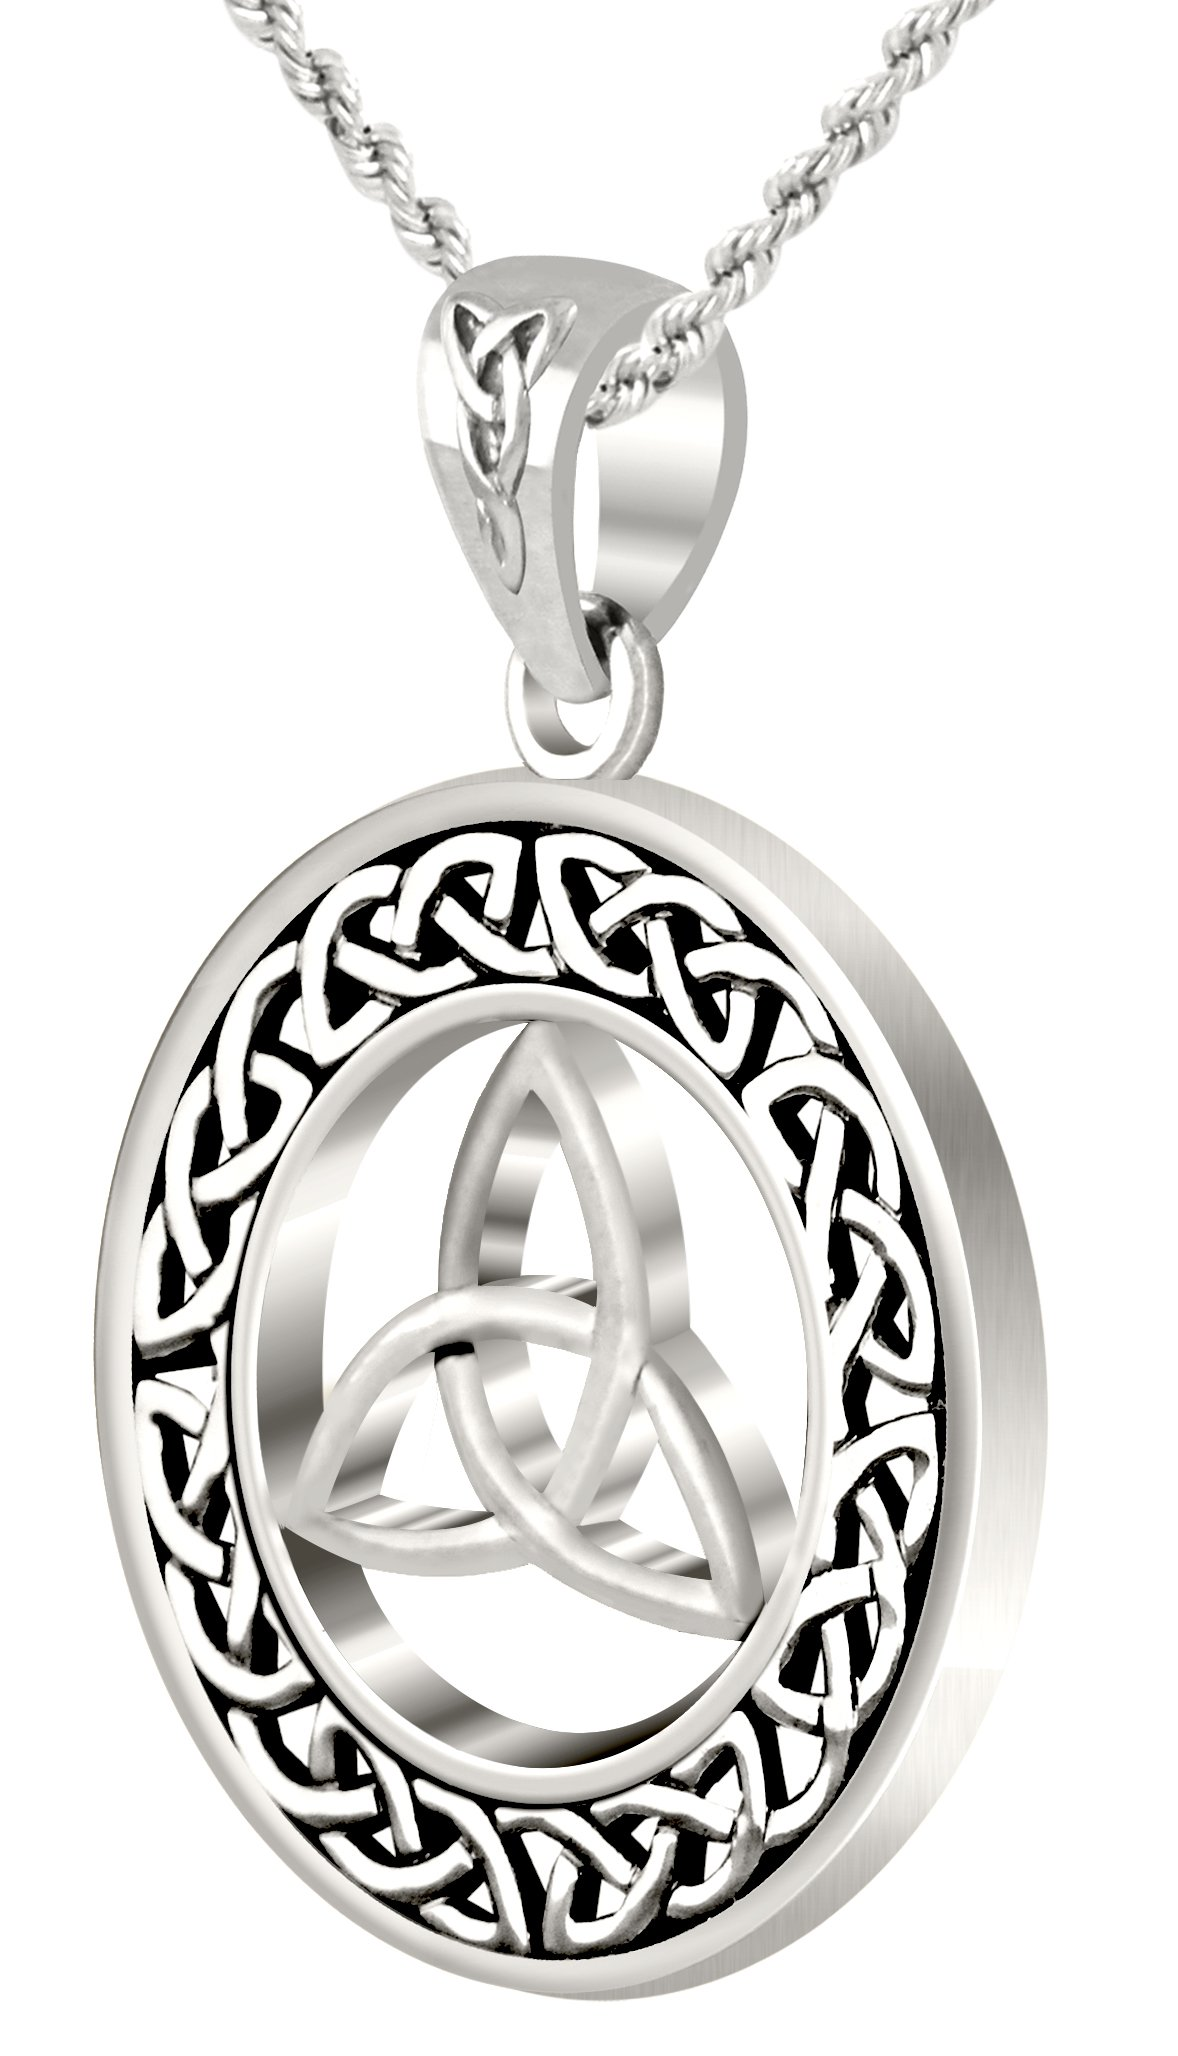 New Round 0.925 Sterling Silver Irish Celtic Trinity Love Knot Pendant Necklace